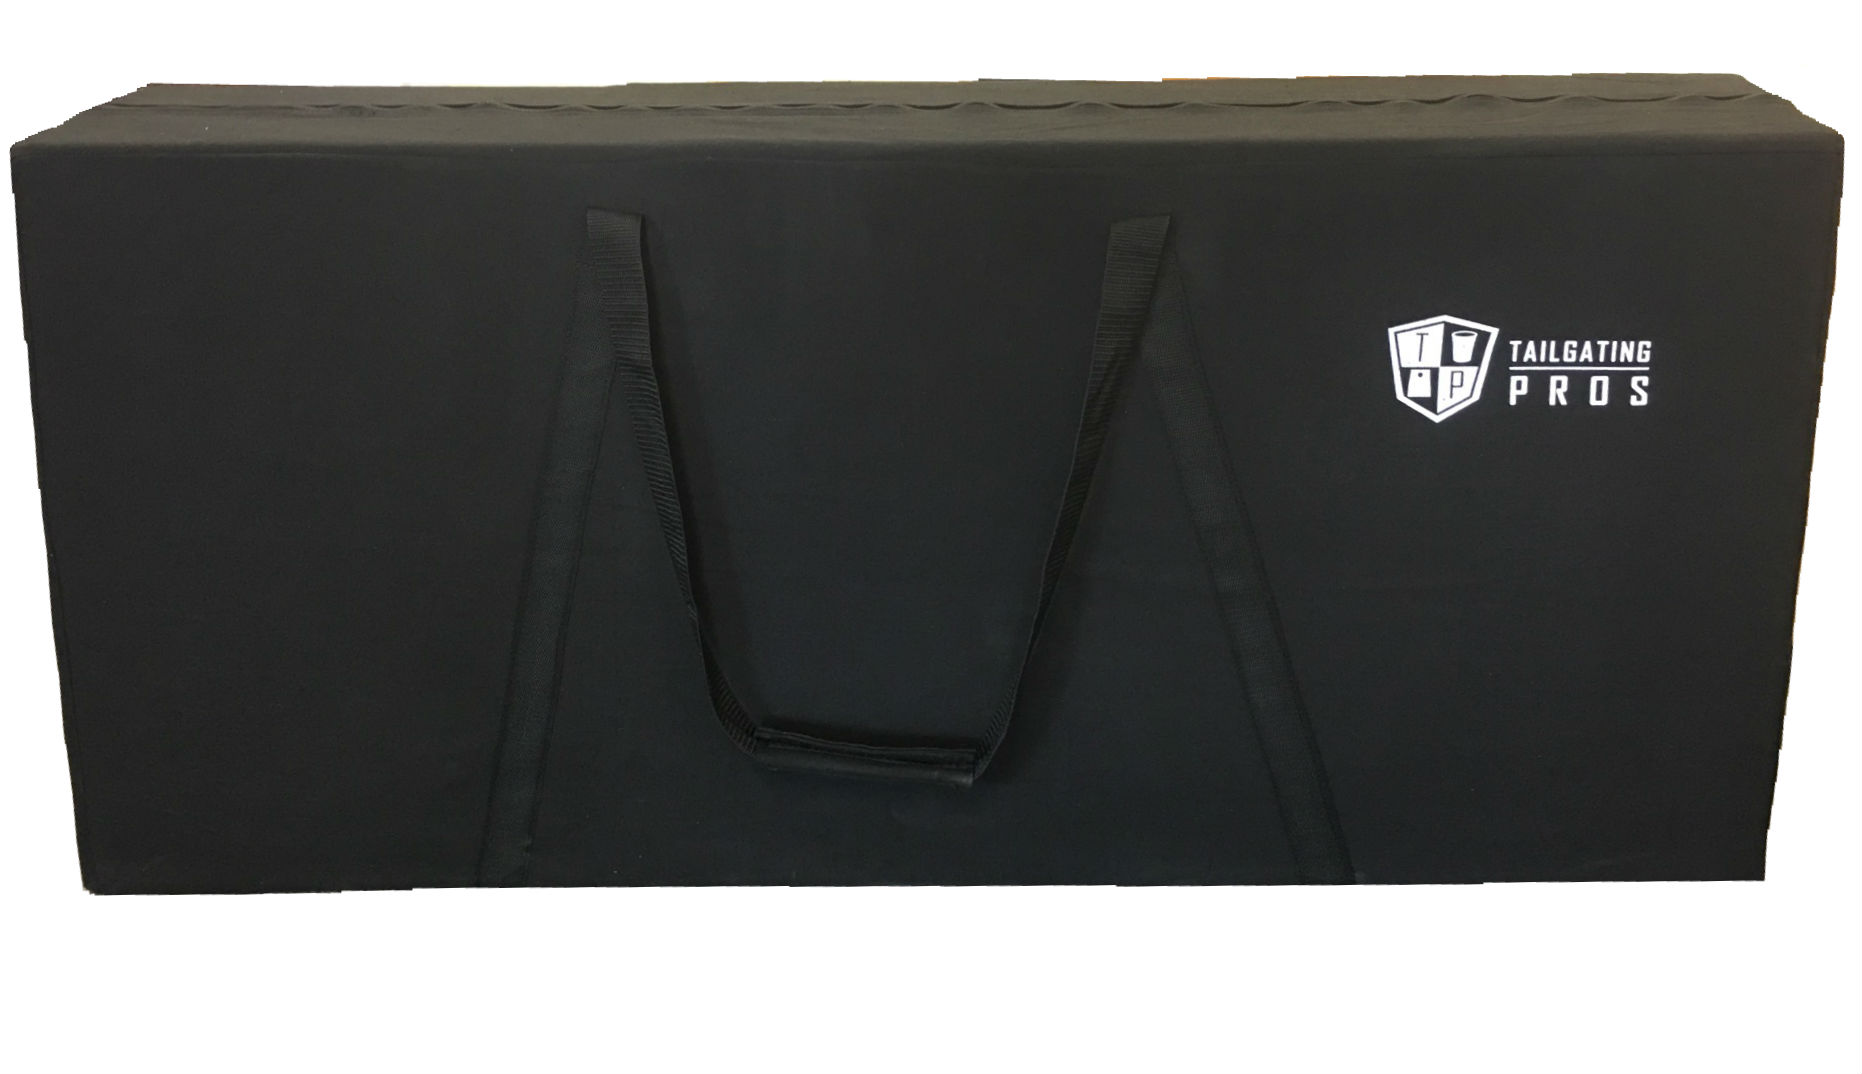 Tailgating Pros Premium Cornhole Board Carrying Case Tote Bag 4ft x 2ft by